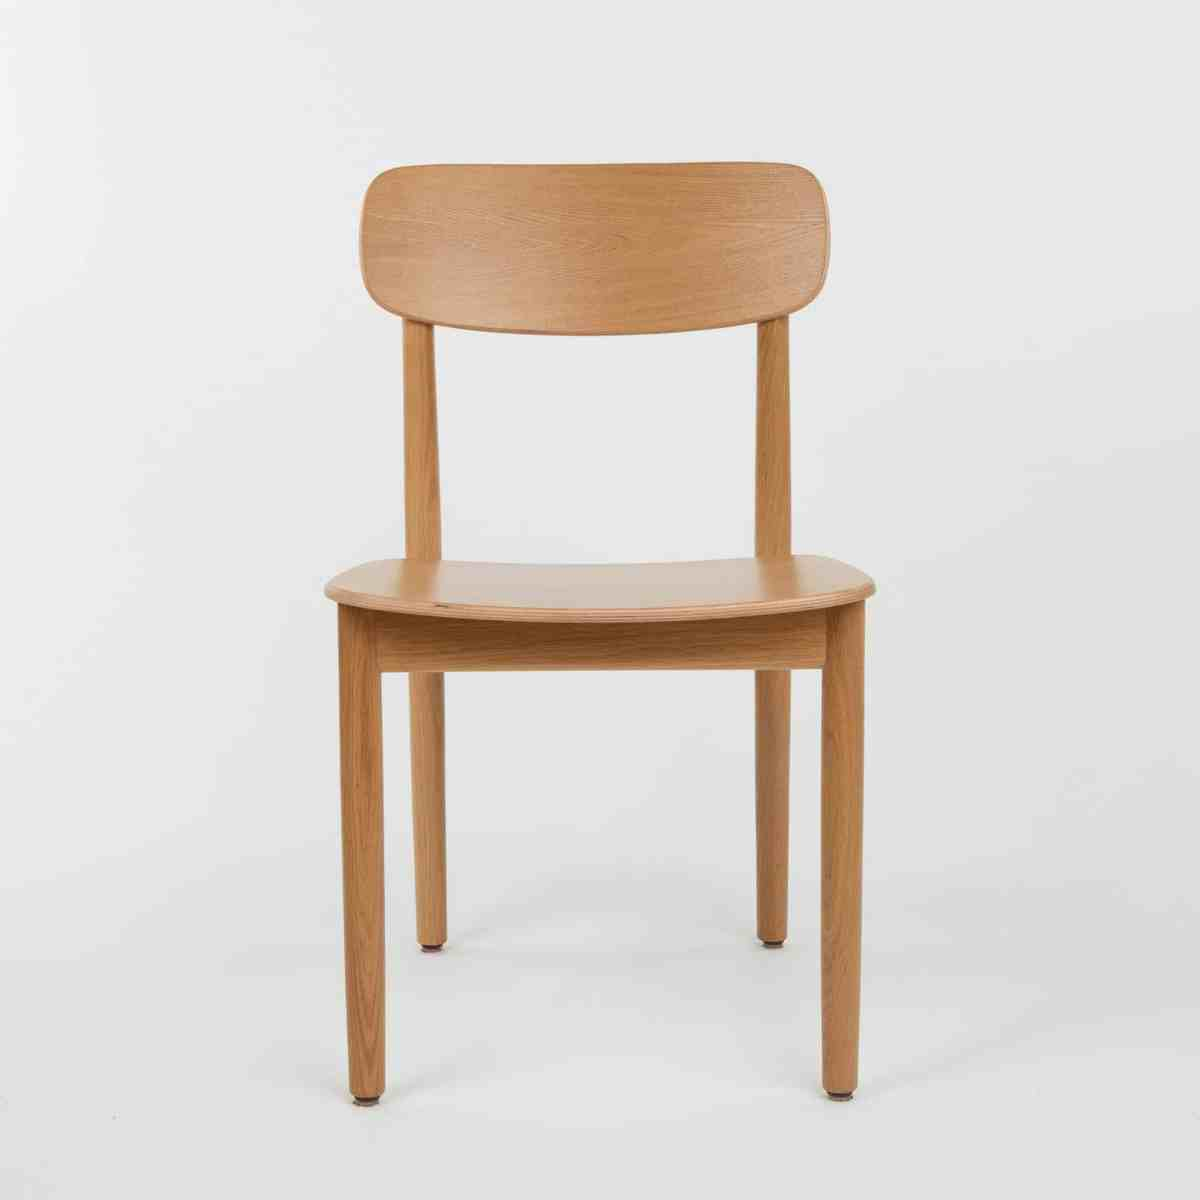 another-country-thonet-chair-130-no-armrests-oak-non-upholstered-001.jpg